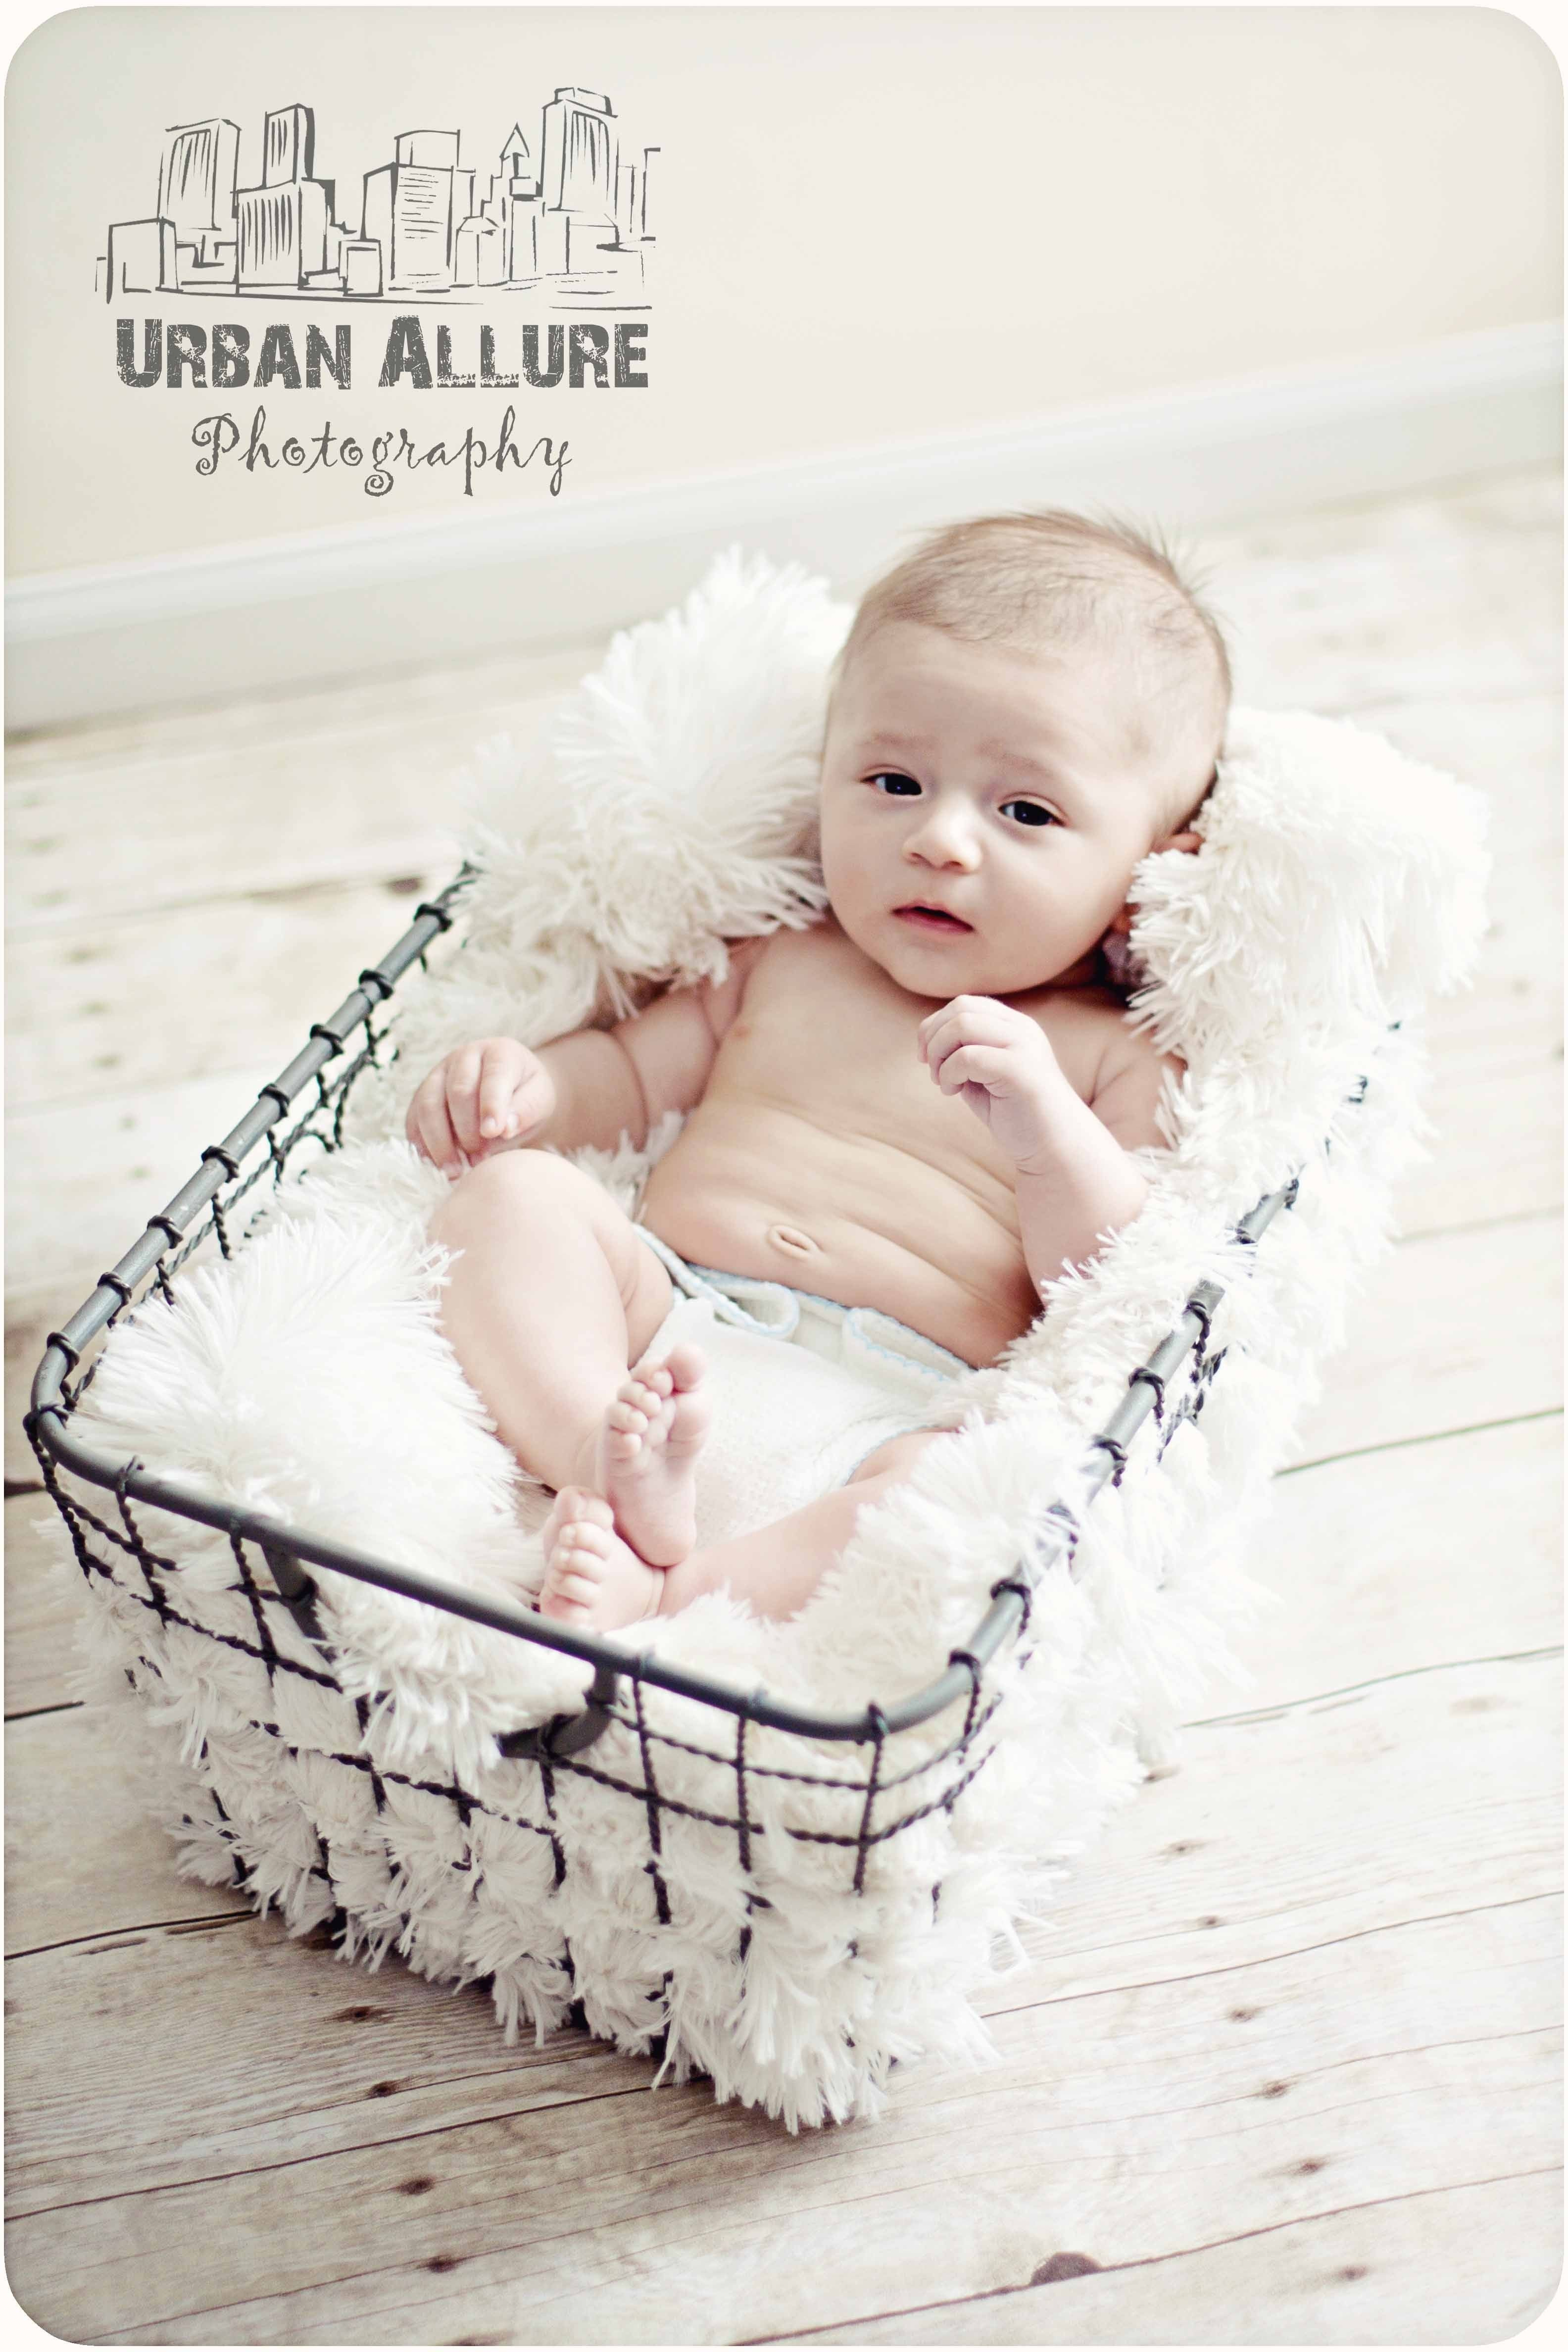 10 Elegant 3 Month Baby Photo Shoot Ideas for judsons three month pictures perhaps photography pinterest 9 2021